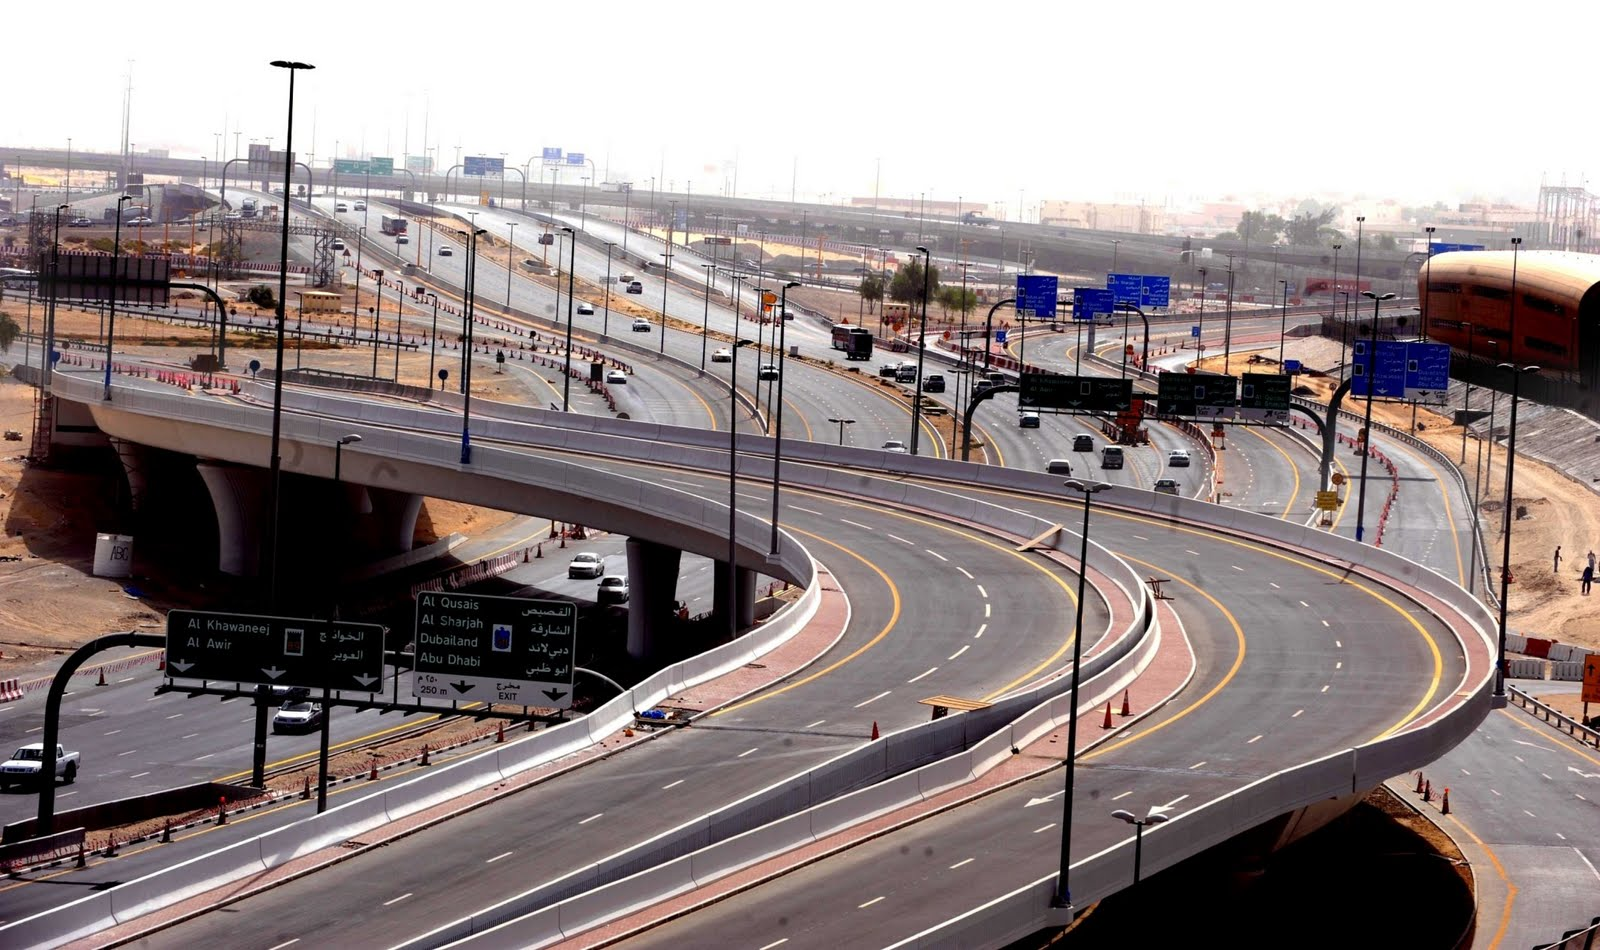 RTA: All bridges on Airport Street to open this week